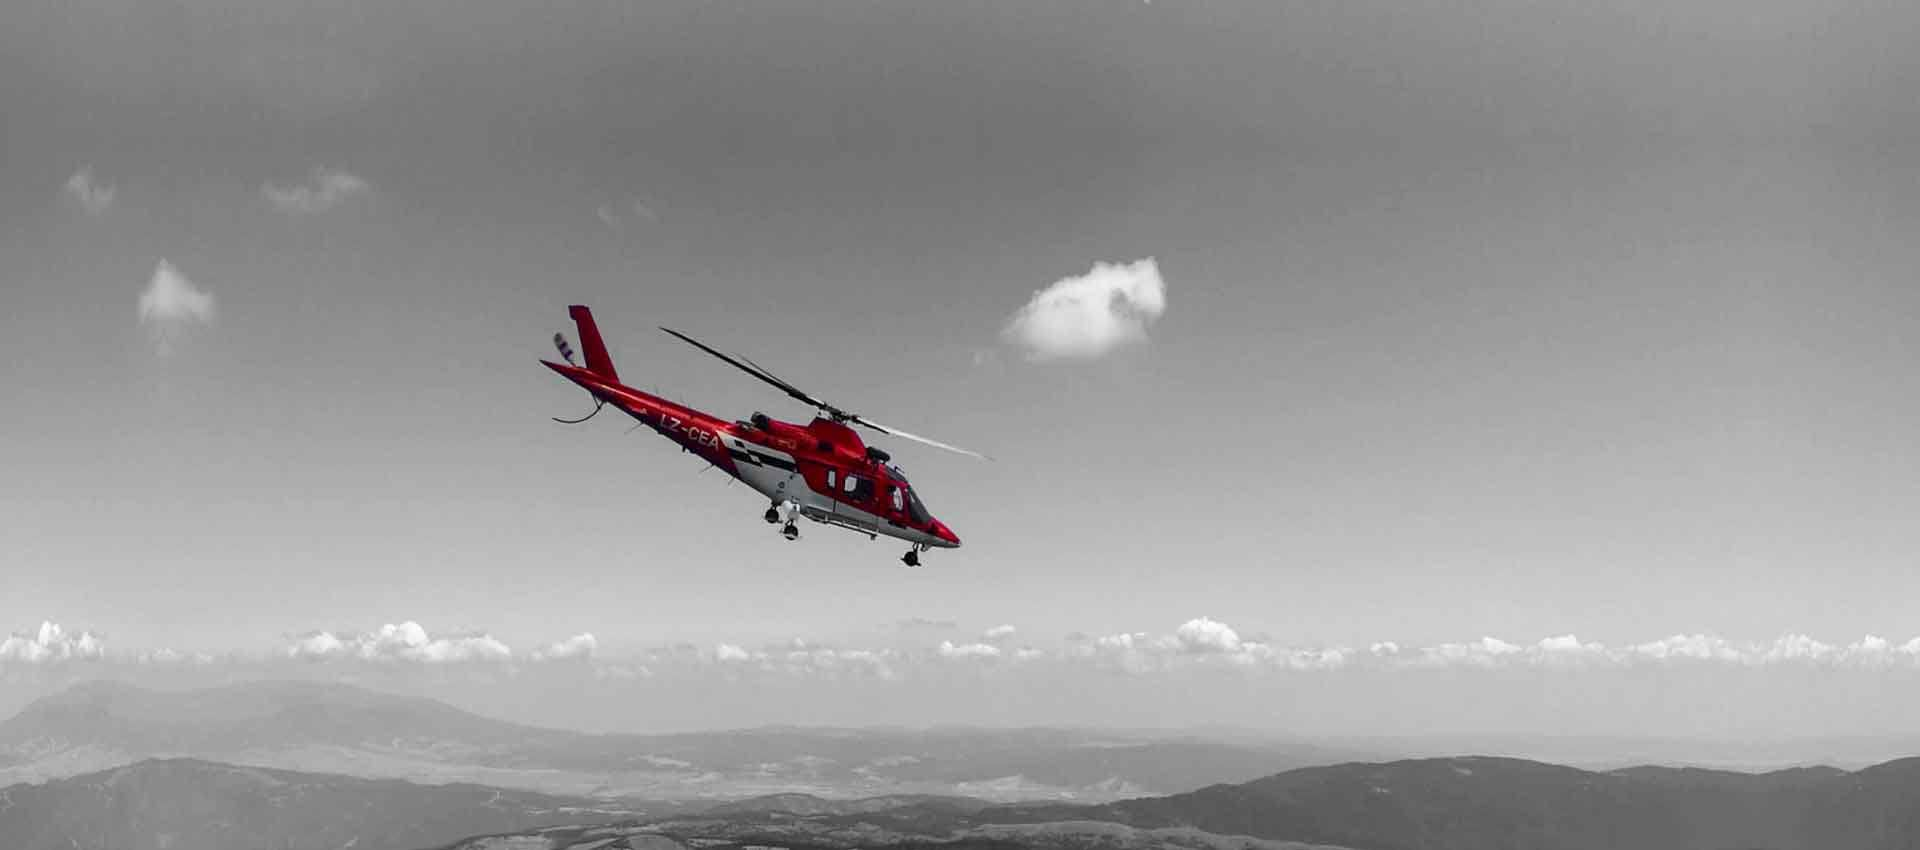 850 High ALtitude Helicopter